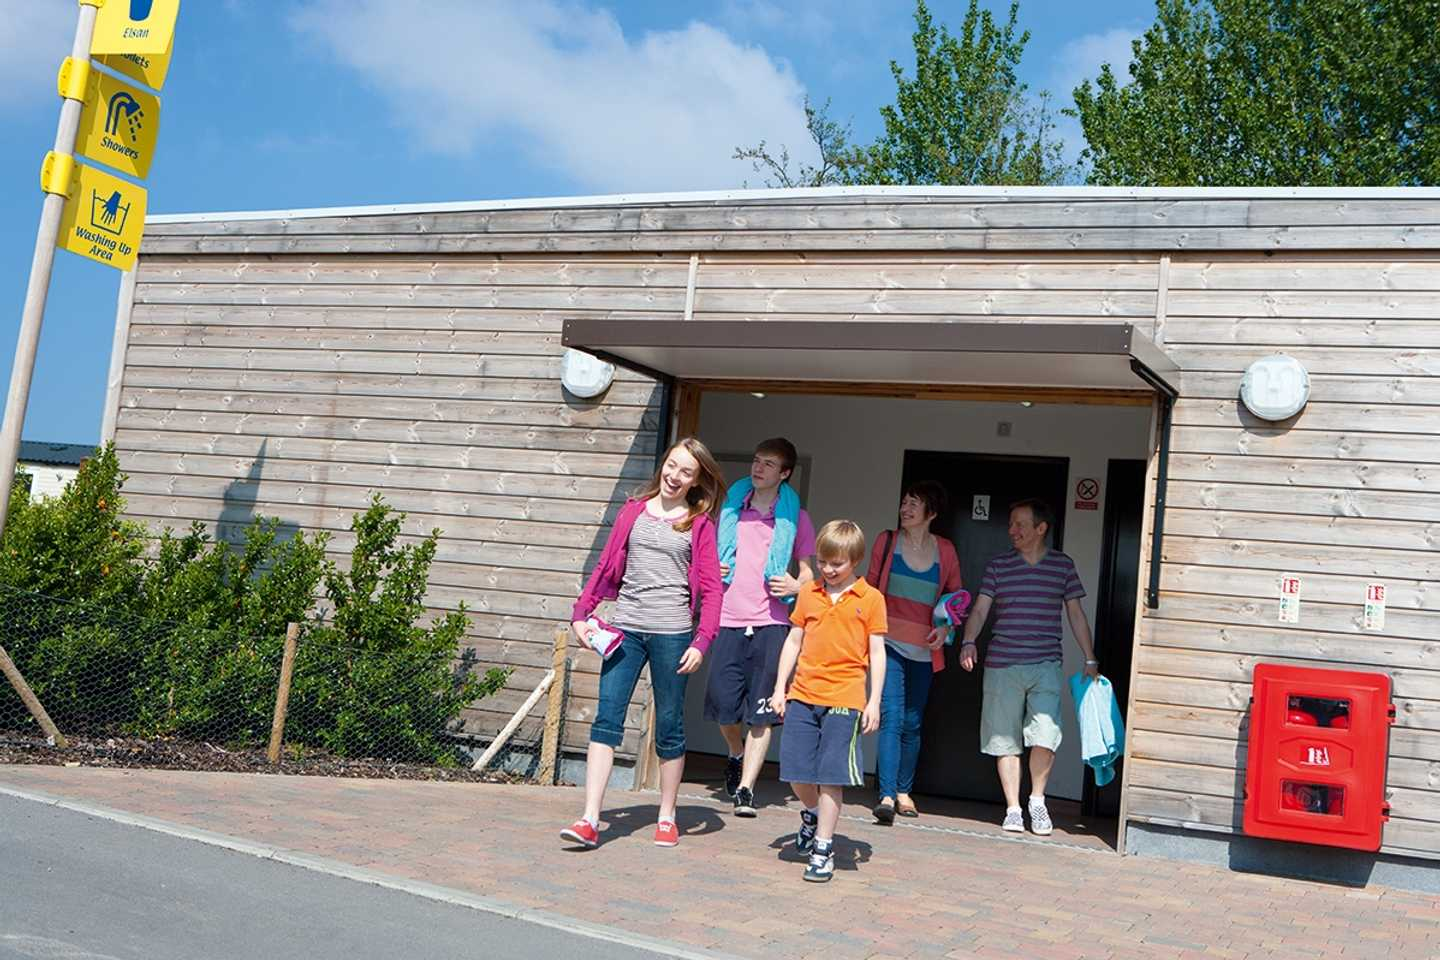 Guests using the touring facilities at Marton Mere